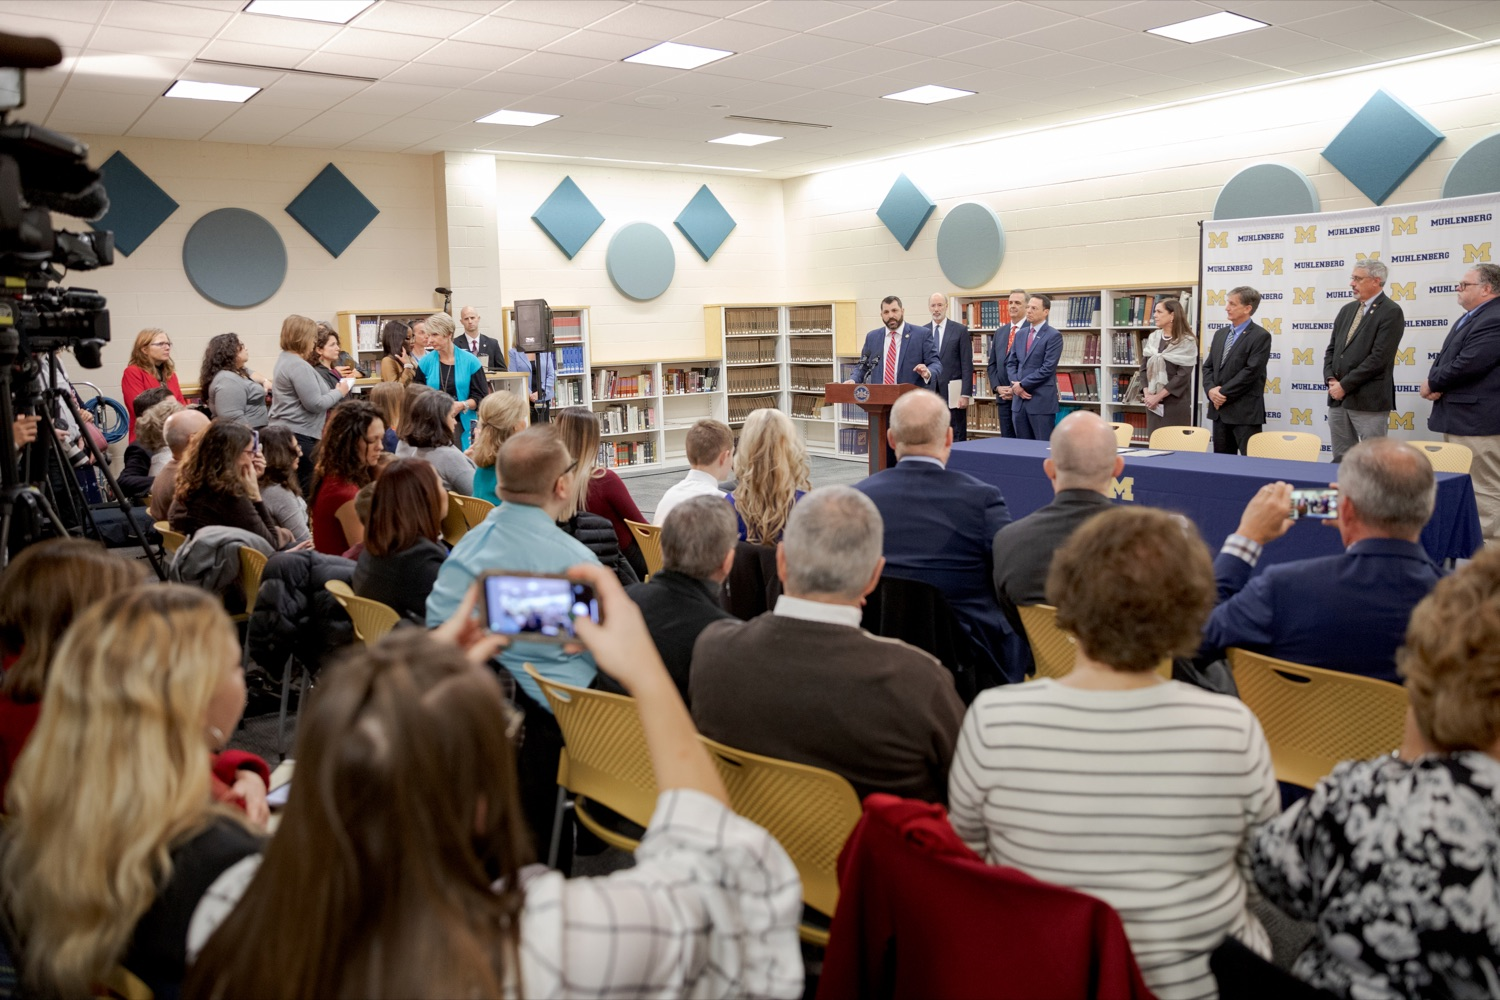 """<a href=""""https://filesource.wostreaming.net/commonwealthofpa/photo/17628_GOV_AG_Bill_Signing_NK_015.JPG"""" target=""""_blank"""">⇣Download Photo<br></a>State Rep. Mark Rozzi, a survivor of childhood sexual abuse, speaks before signing a package of three bills, which mirror three of the Grand Jurys recommendations on addressing the statute of limitations for victims of child sexual abuse, inside Muhlenberg High School on Tuesday, November 26, 2019. i"""